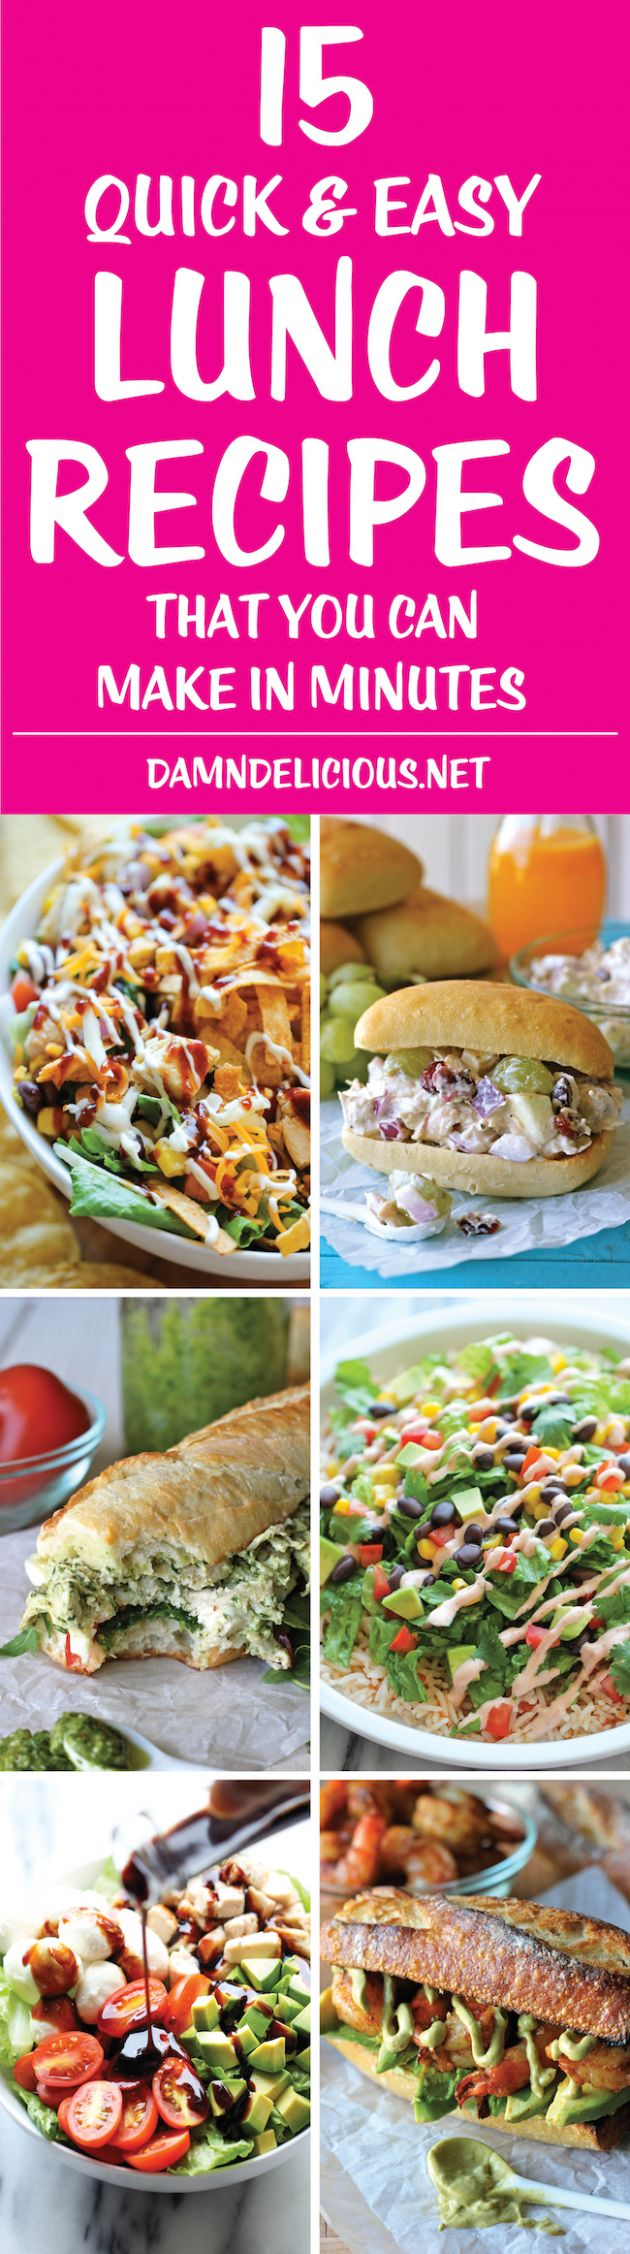 12 Quick and Easy Lunch Recipes - Damn Delicious - Easy Recipes Lunch